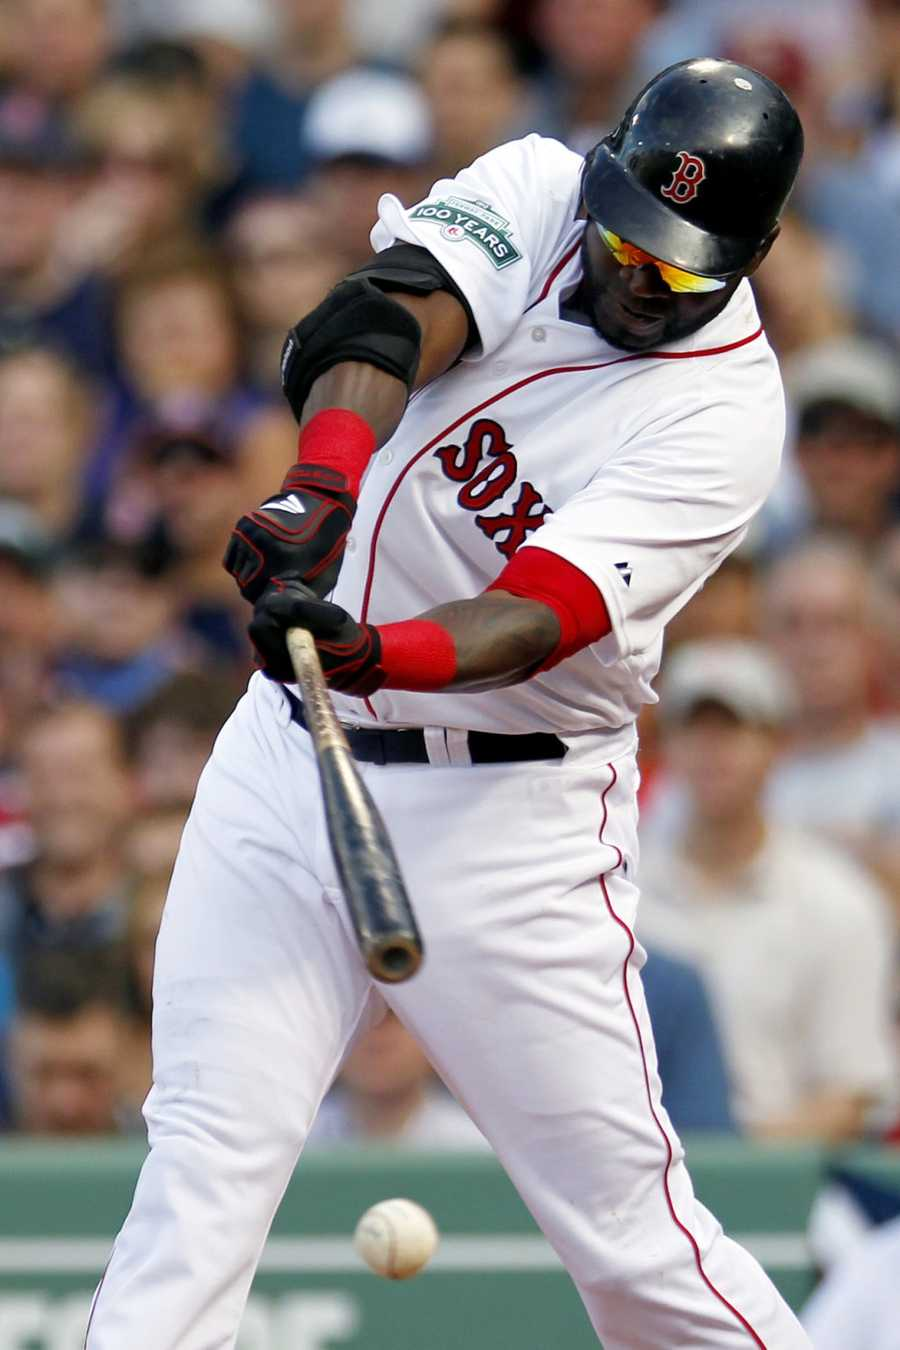 04) David - 2,943 (Pictured here is David Ortiz, DH for the Boston Red Sox)